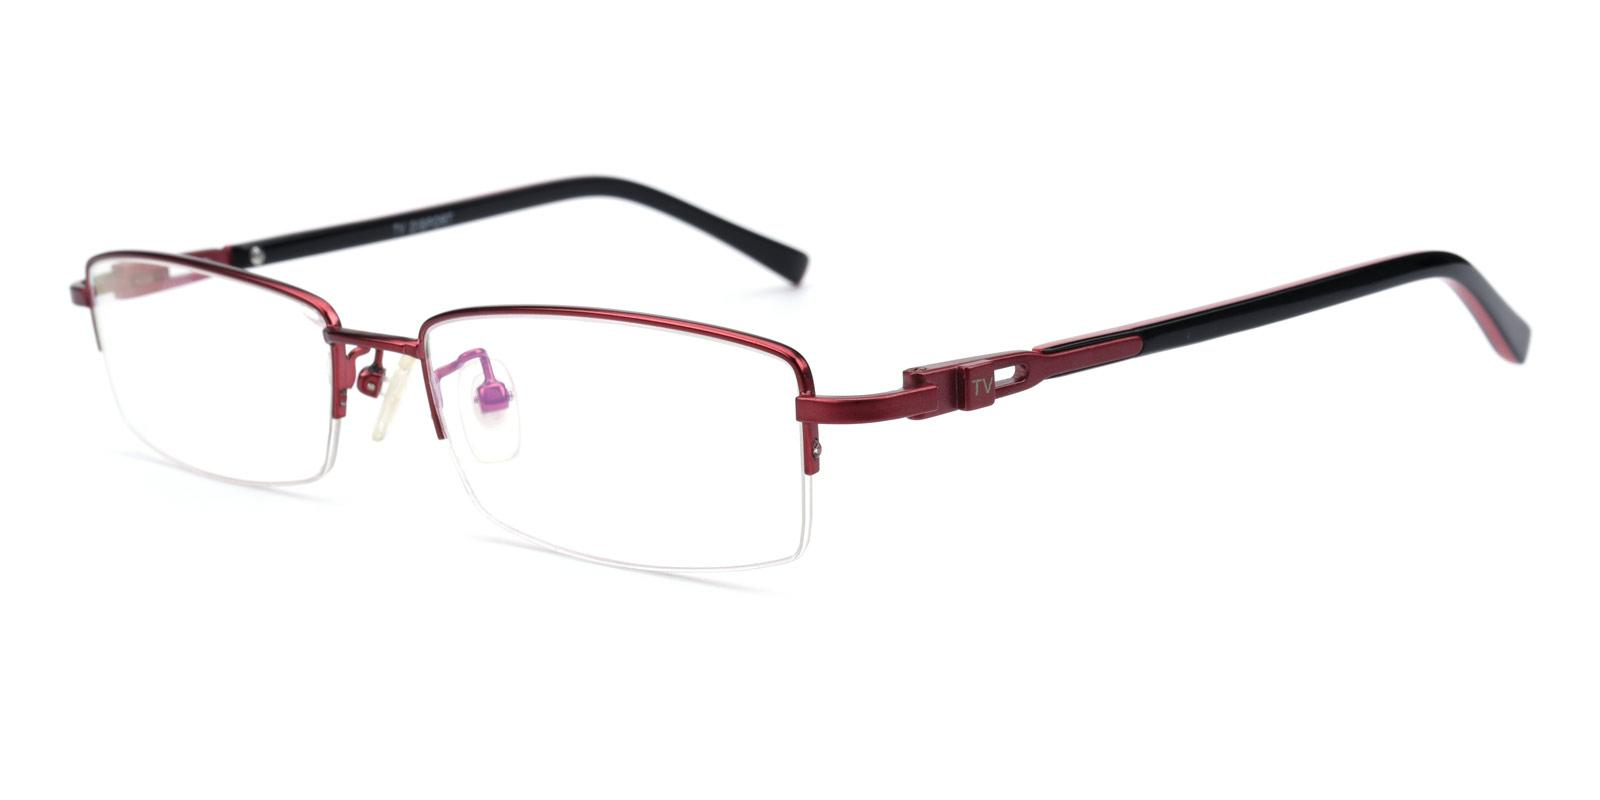 Coliny-Red-Rectangle-Metal-Eyeglasses-additional1